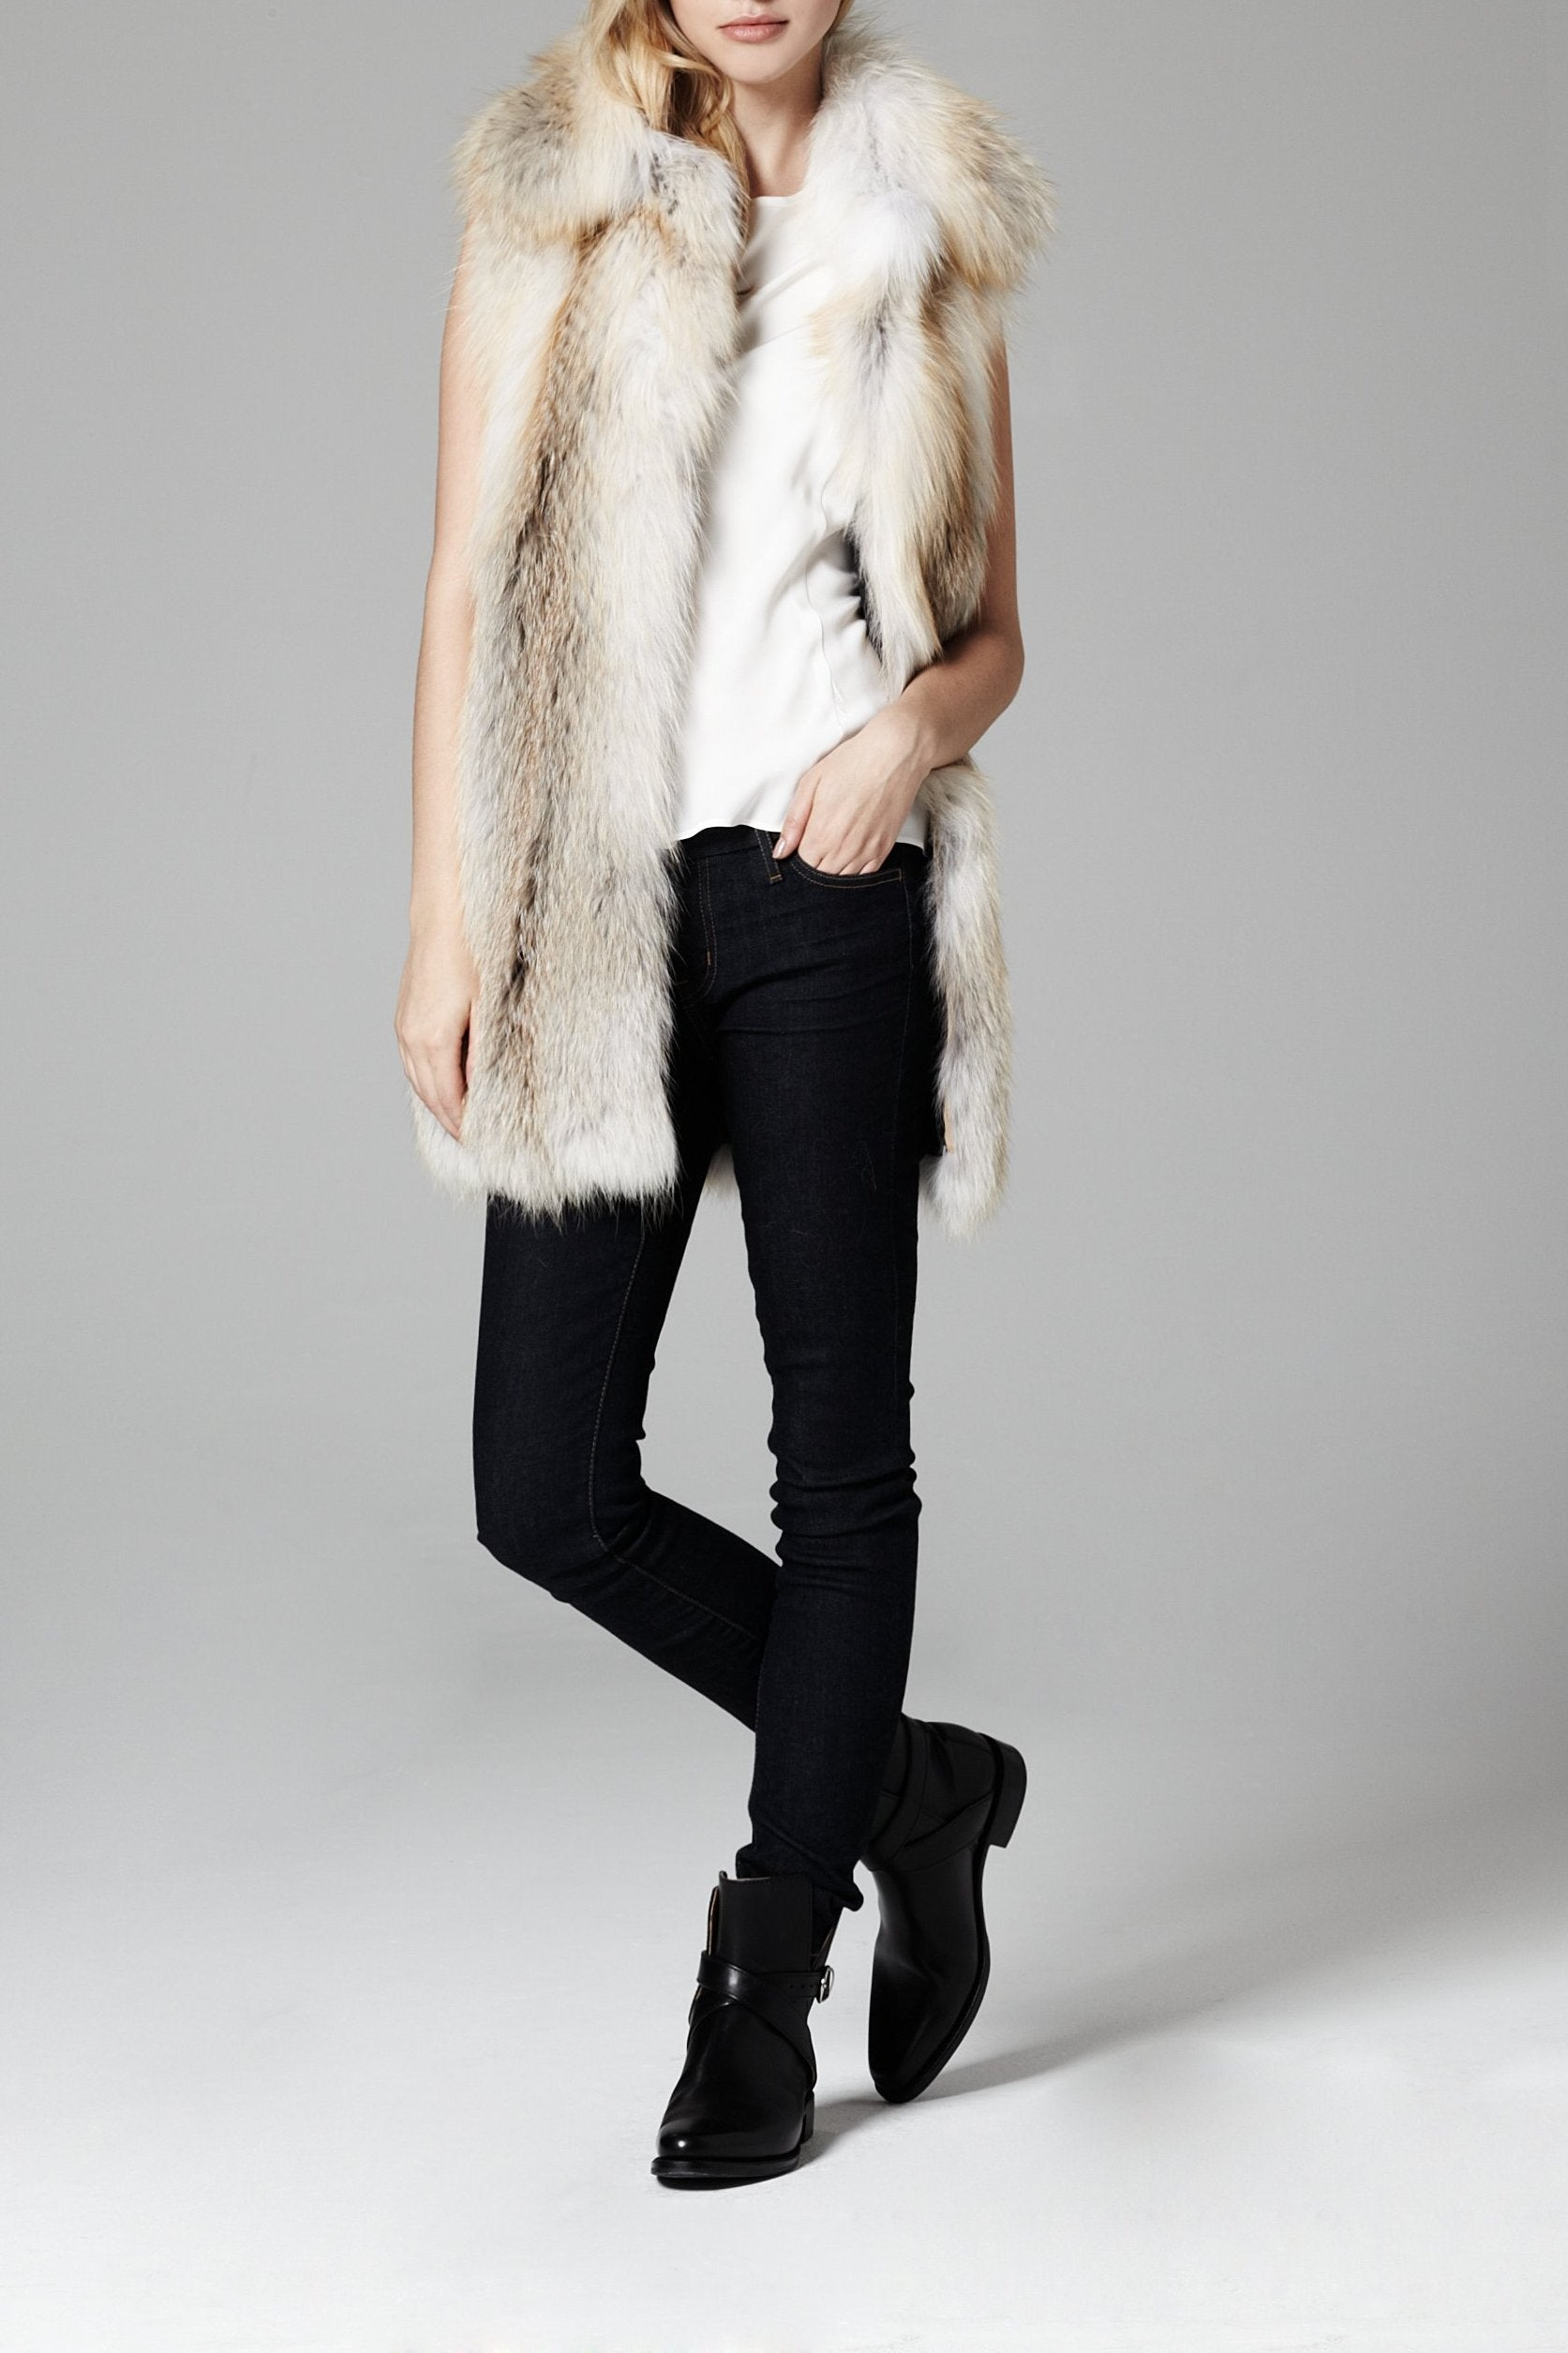 Barbara Fox Fur Vest